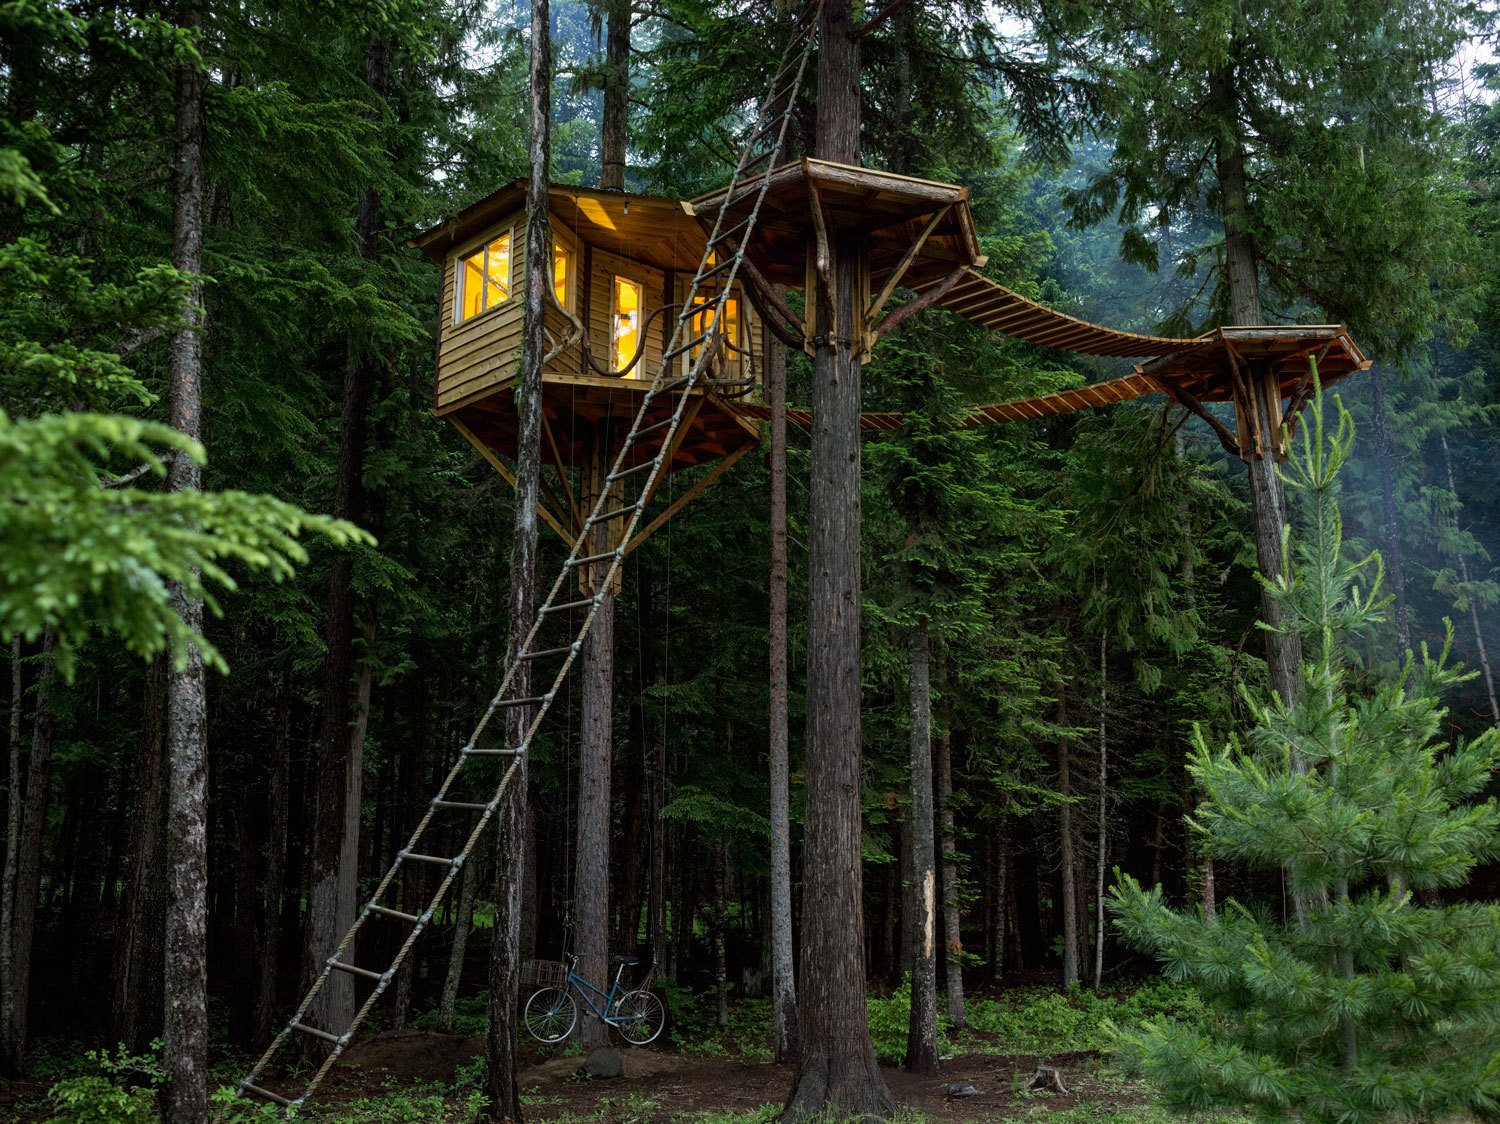 Ethan Schussler built his first tree house at 12 years old. His today, in Sandpoint, Idaho, sits 30 feet above the ground and is accessed, if not by the rope ladder, an